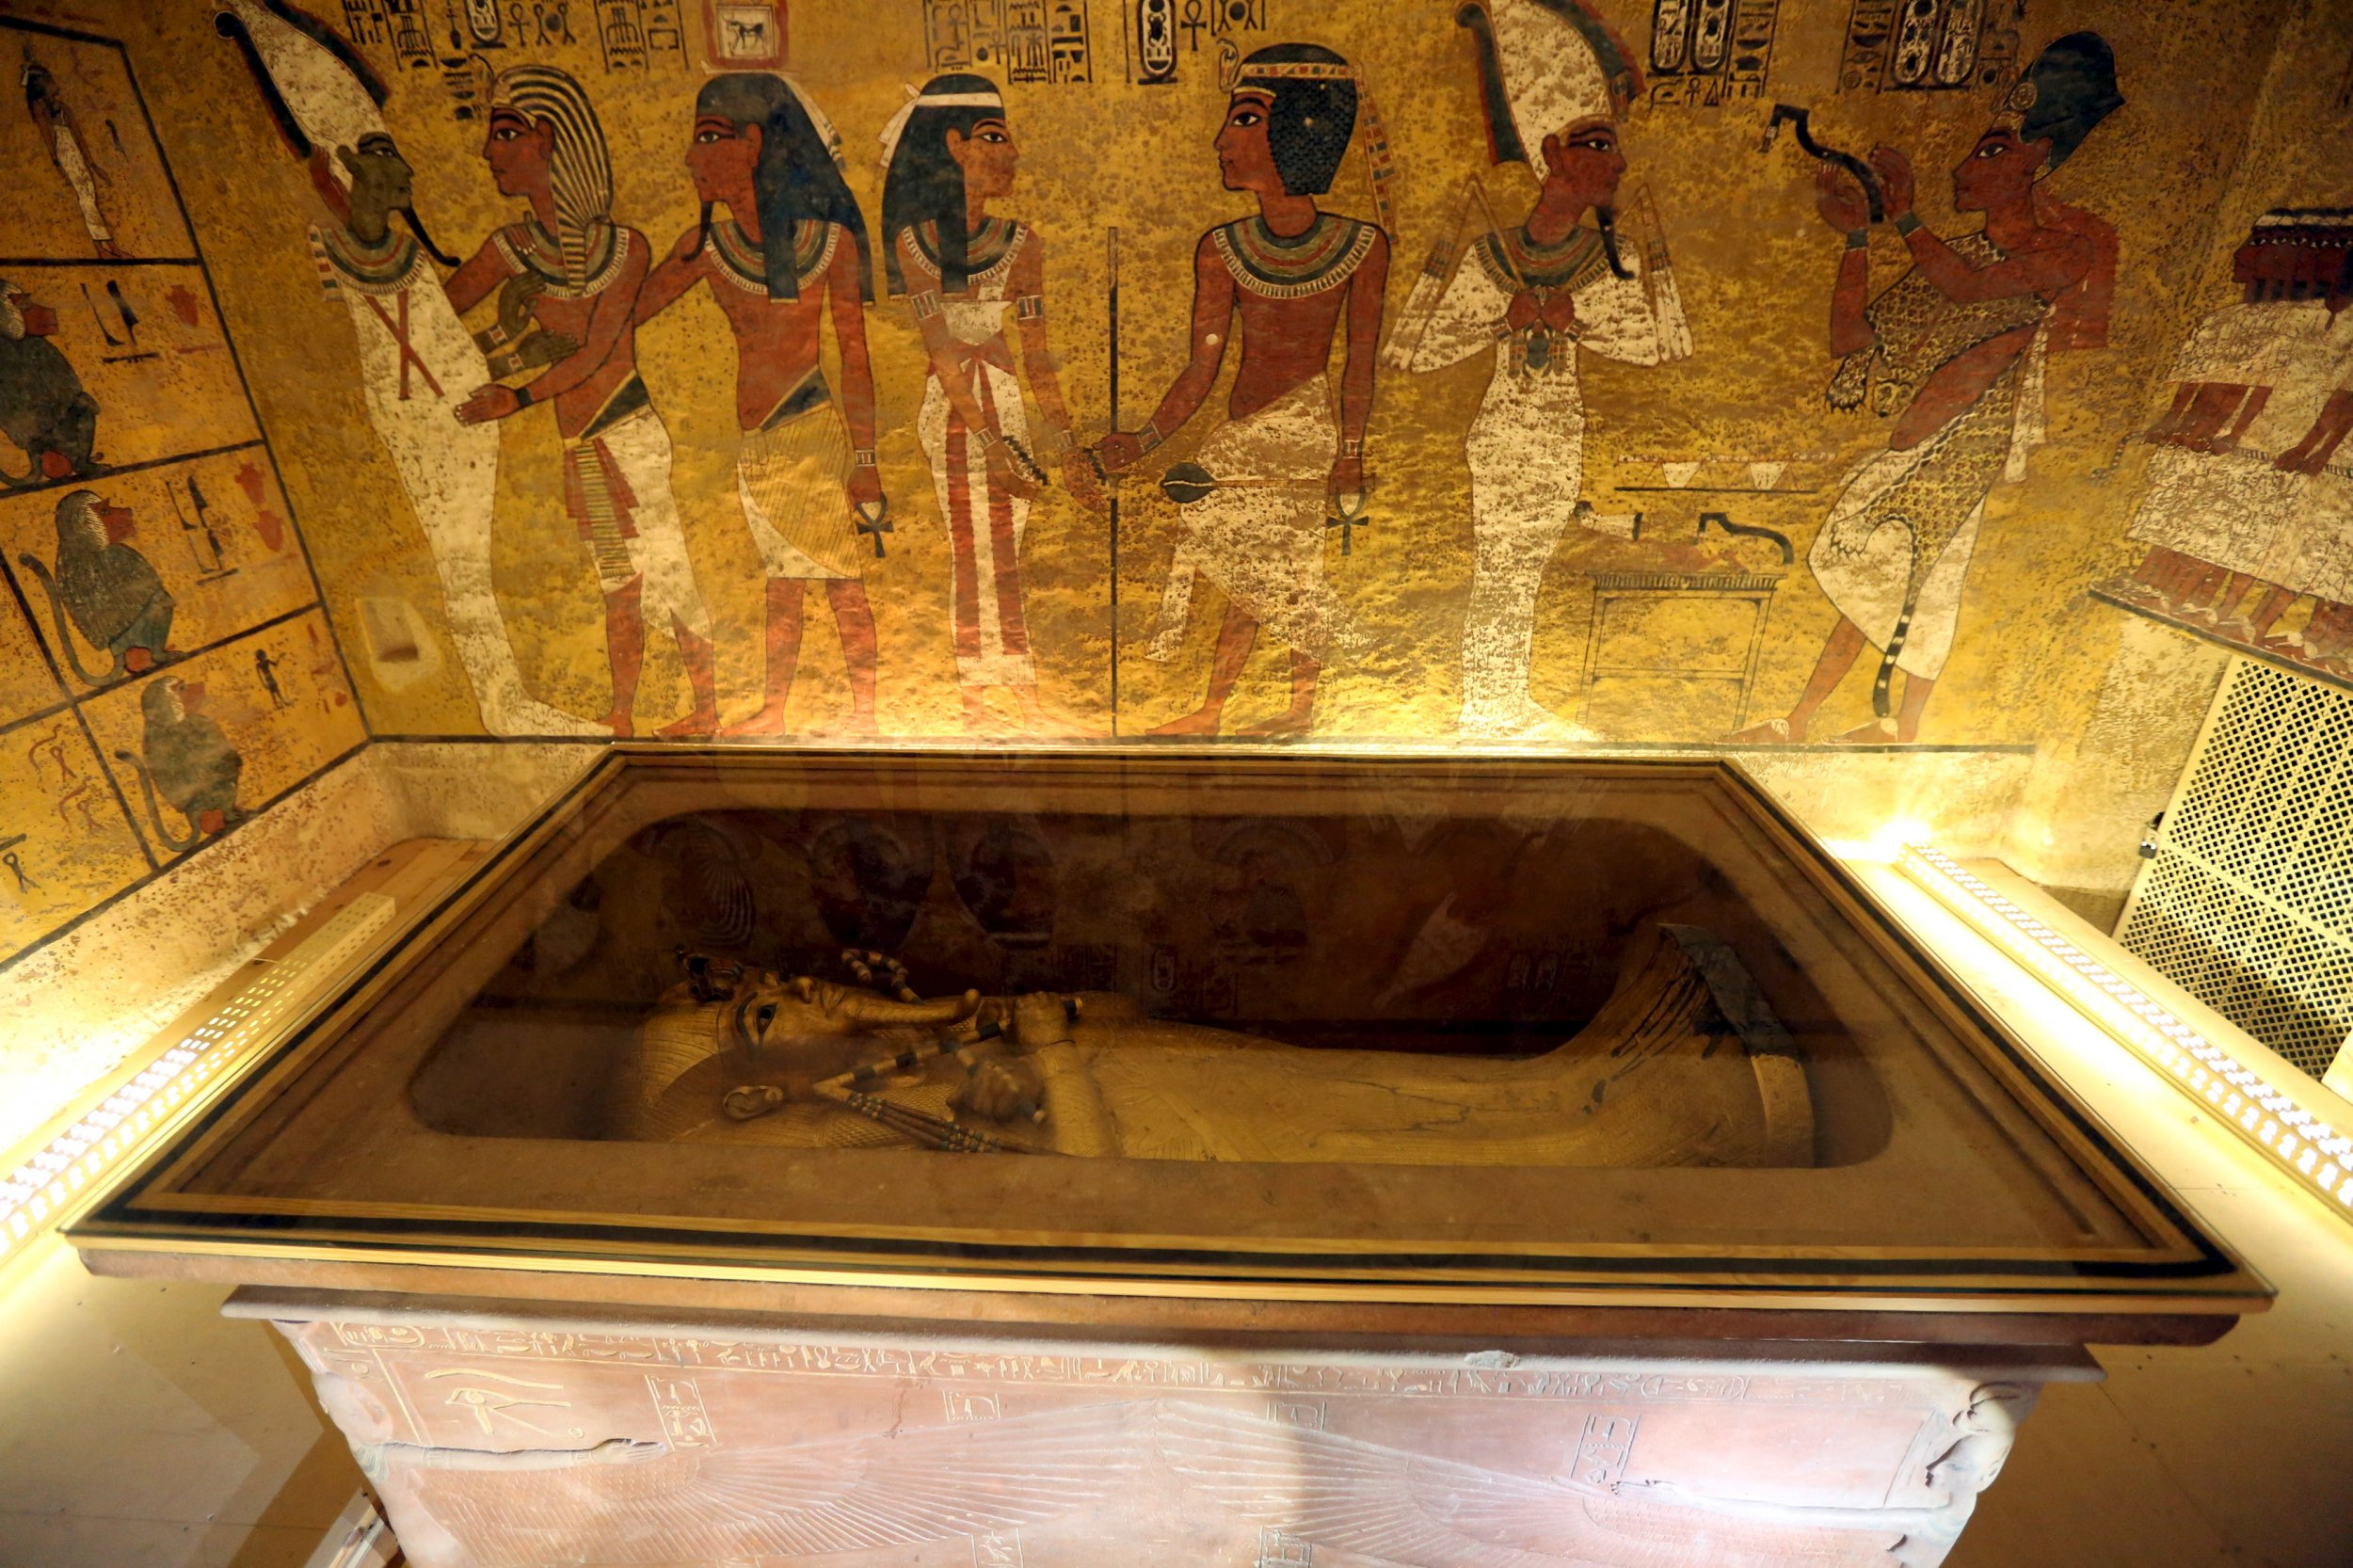 The Curse Of King Tuts Tomb Torrent: Scans Of King Tutankhamun's Tomb May Have Revealed